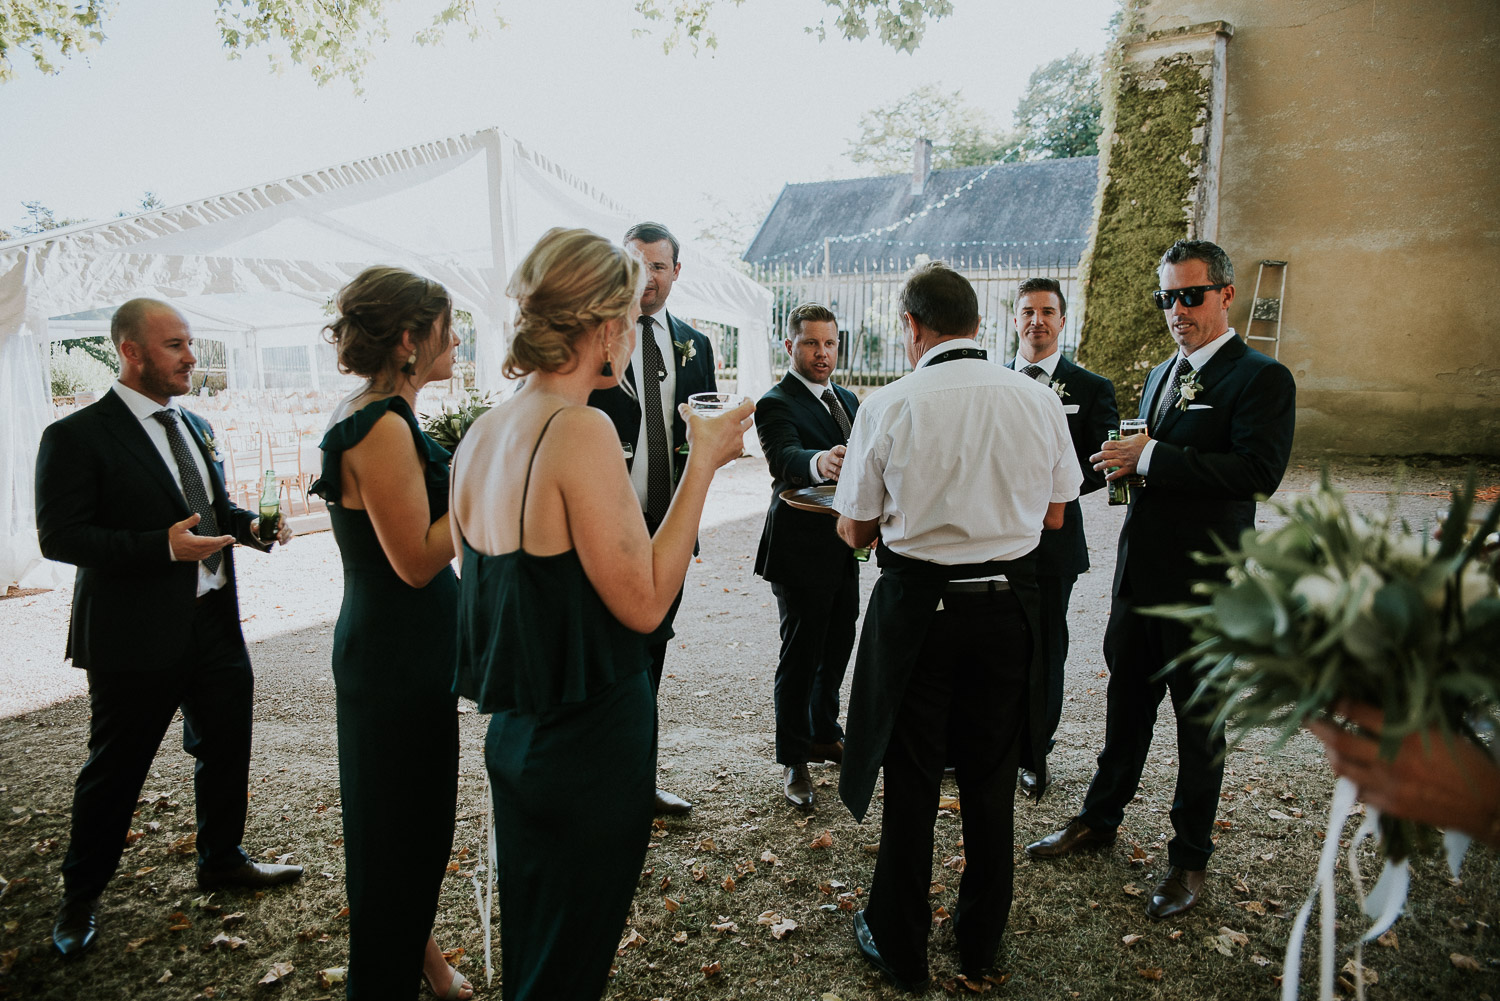 bergerac_wedding_katy_webb_photography_france_UK113